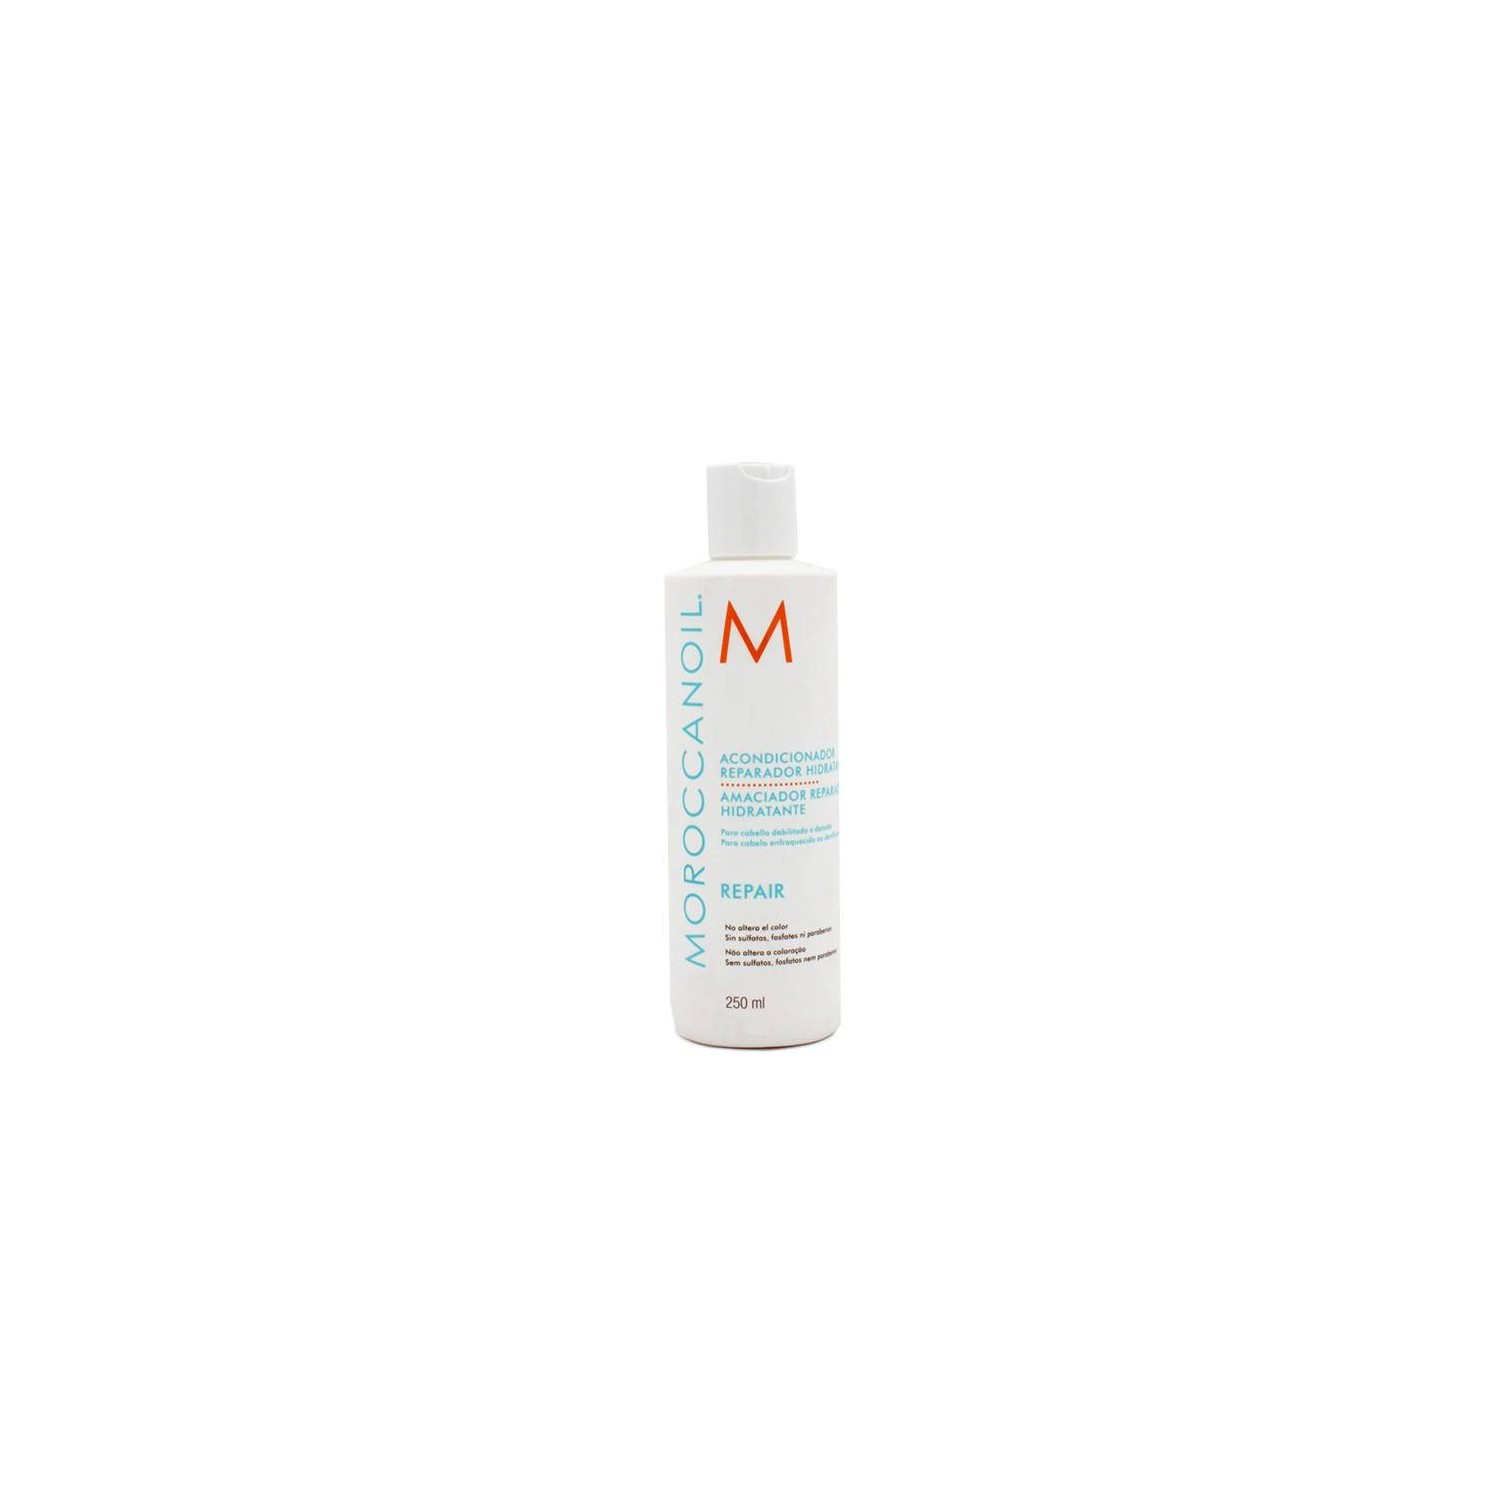 Moroccanoil Conditioner Repairer Moisturizing 250 Ml (repair)